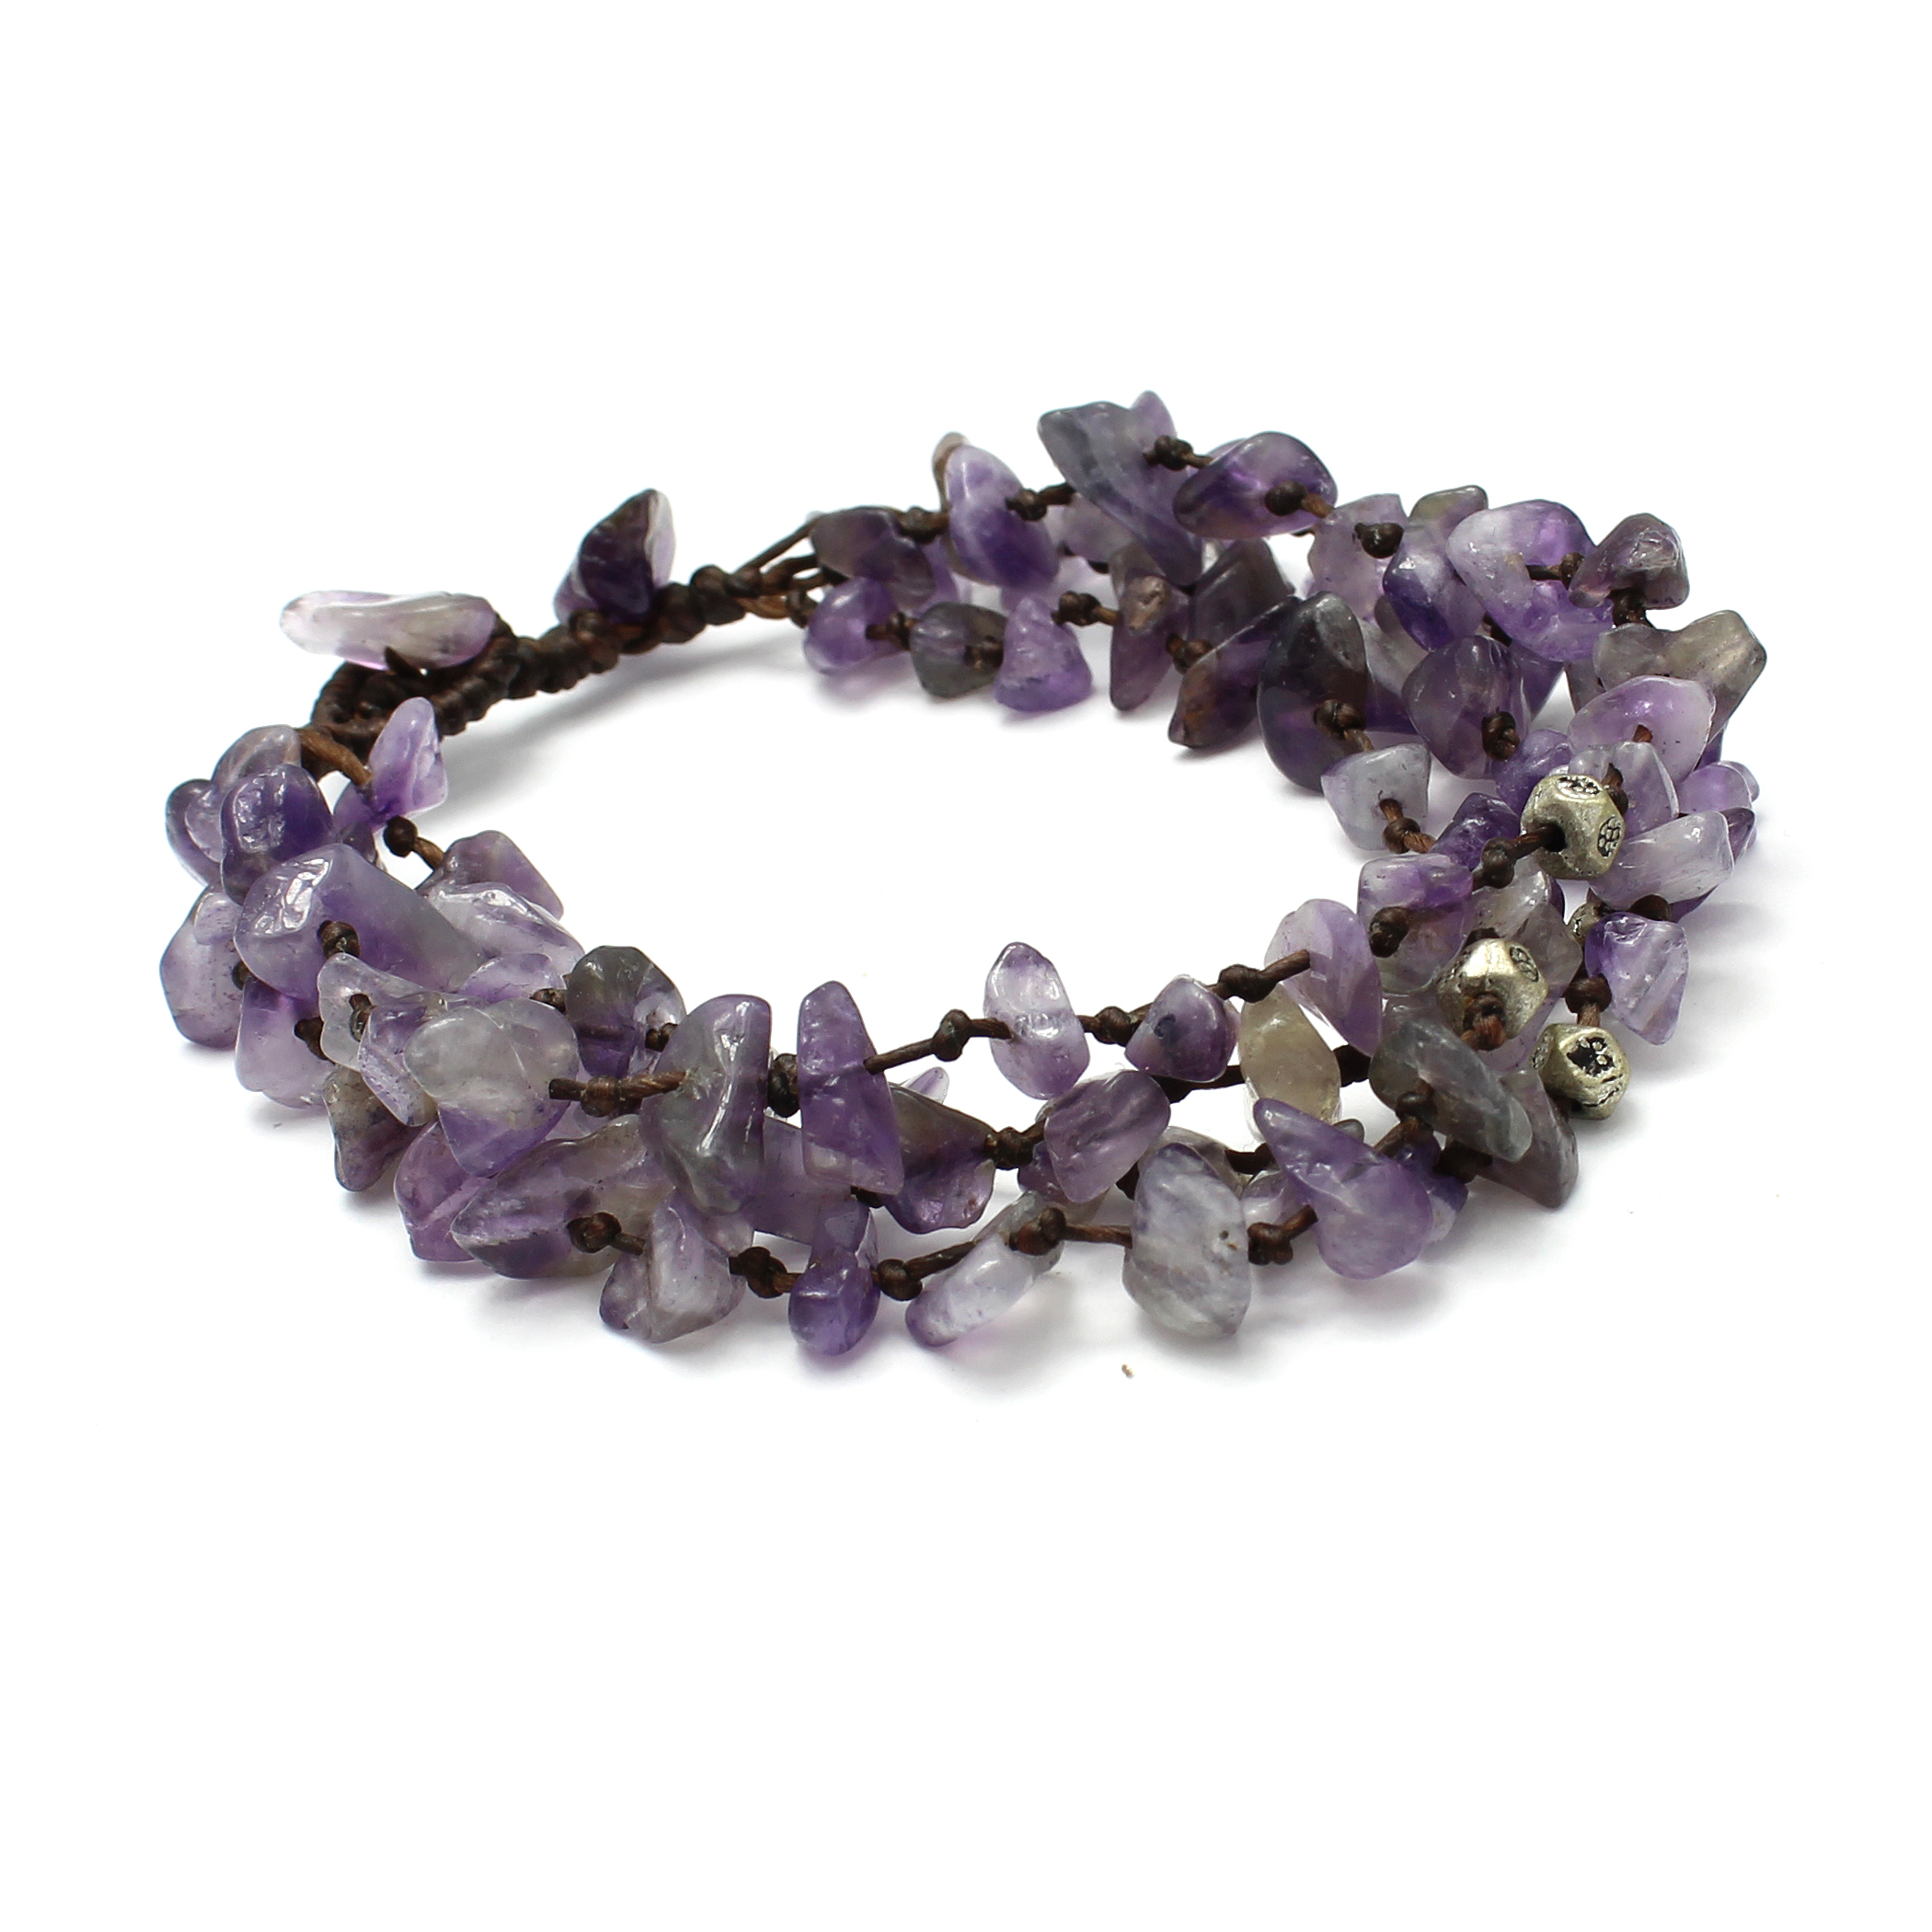 Adjustable Four Strand Purple Stone Bead Bracelet, Handmade Fair Trade